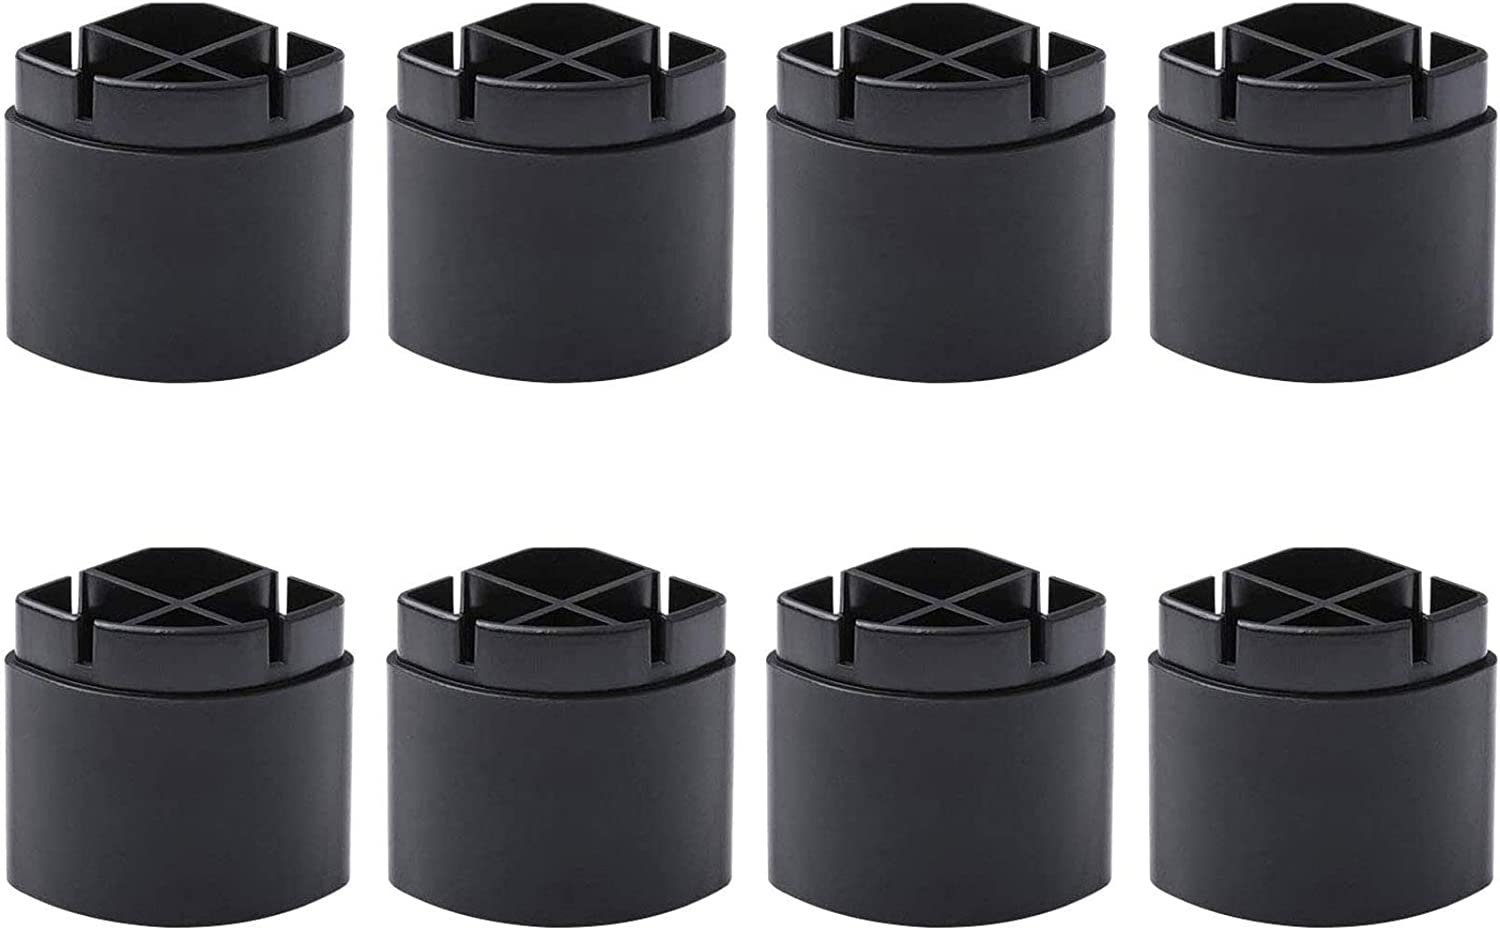 Adjustable Monitor Stand Legs ONLY FITS HUANUO Monitor Stand Models HNLL1 HNLLK1 HNLL1K4 (8 Pack Legs)